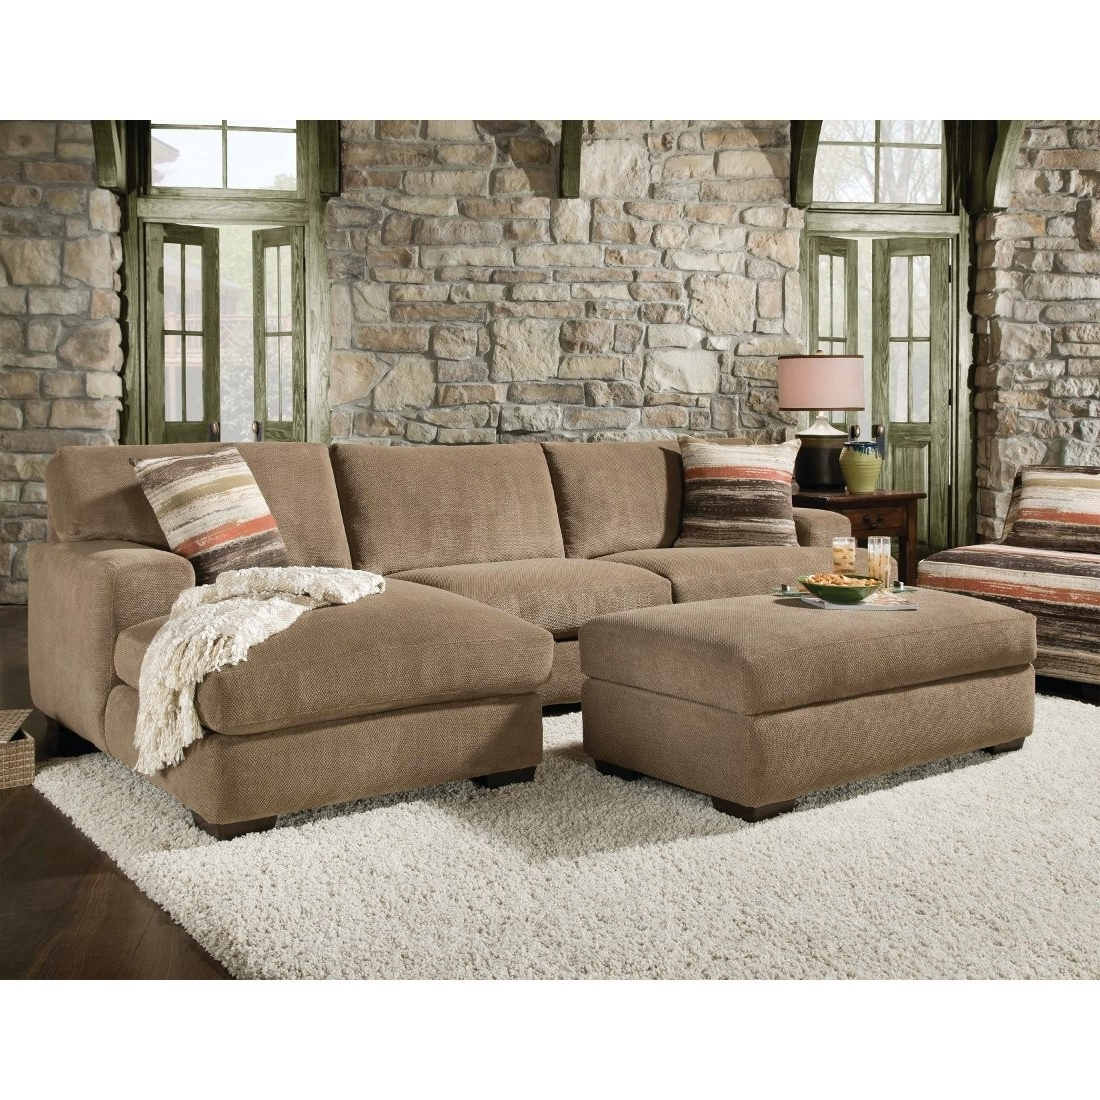 Small Sectional Sofas With Chaise With Most Recently Released Sofa ~ Awesome Small Sectional Sofa With Chaise 71Lhwxg9Fml (View 12 of 15)